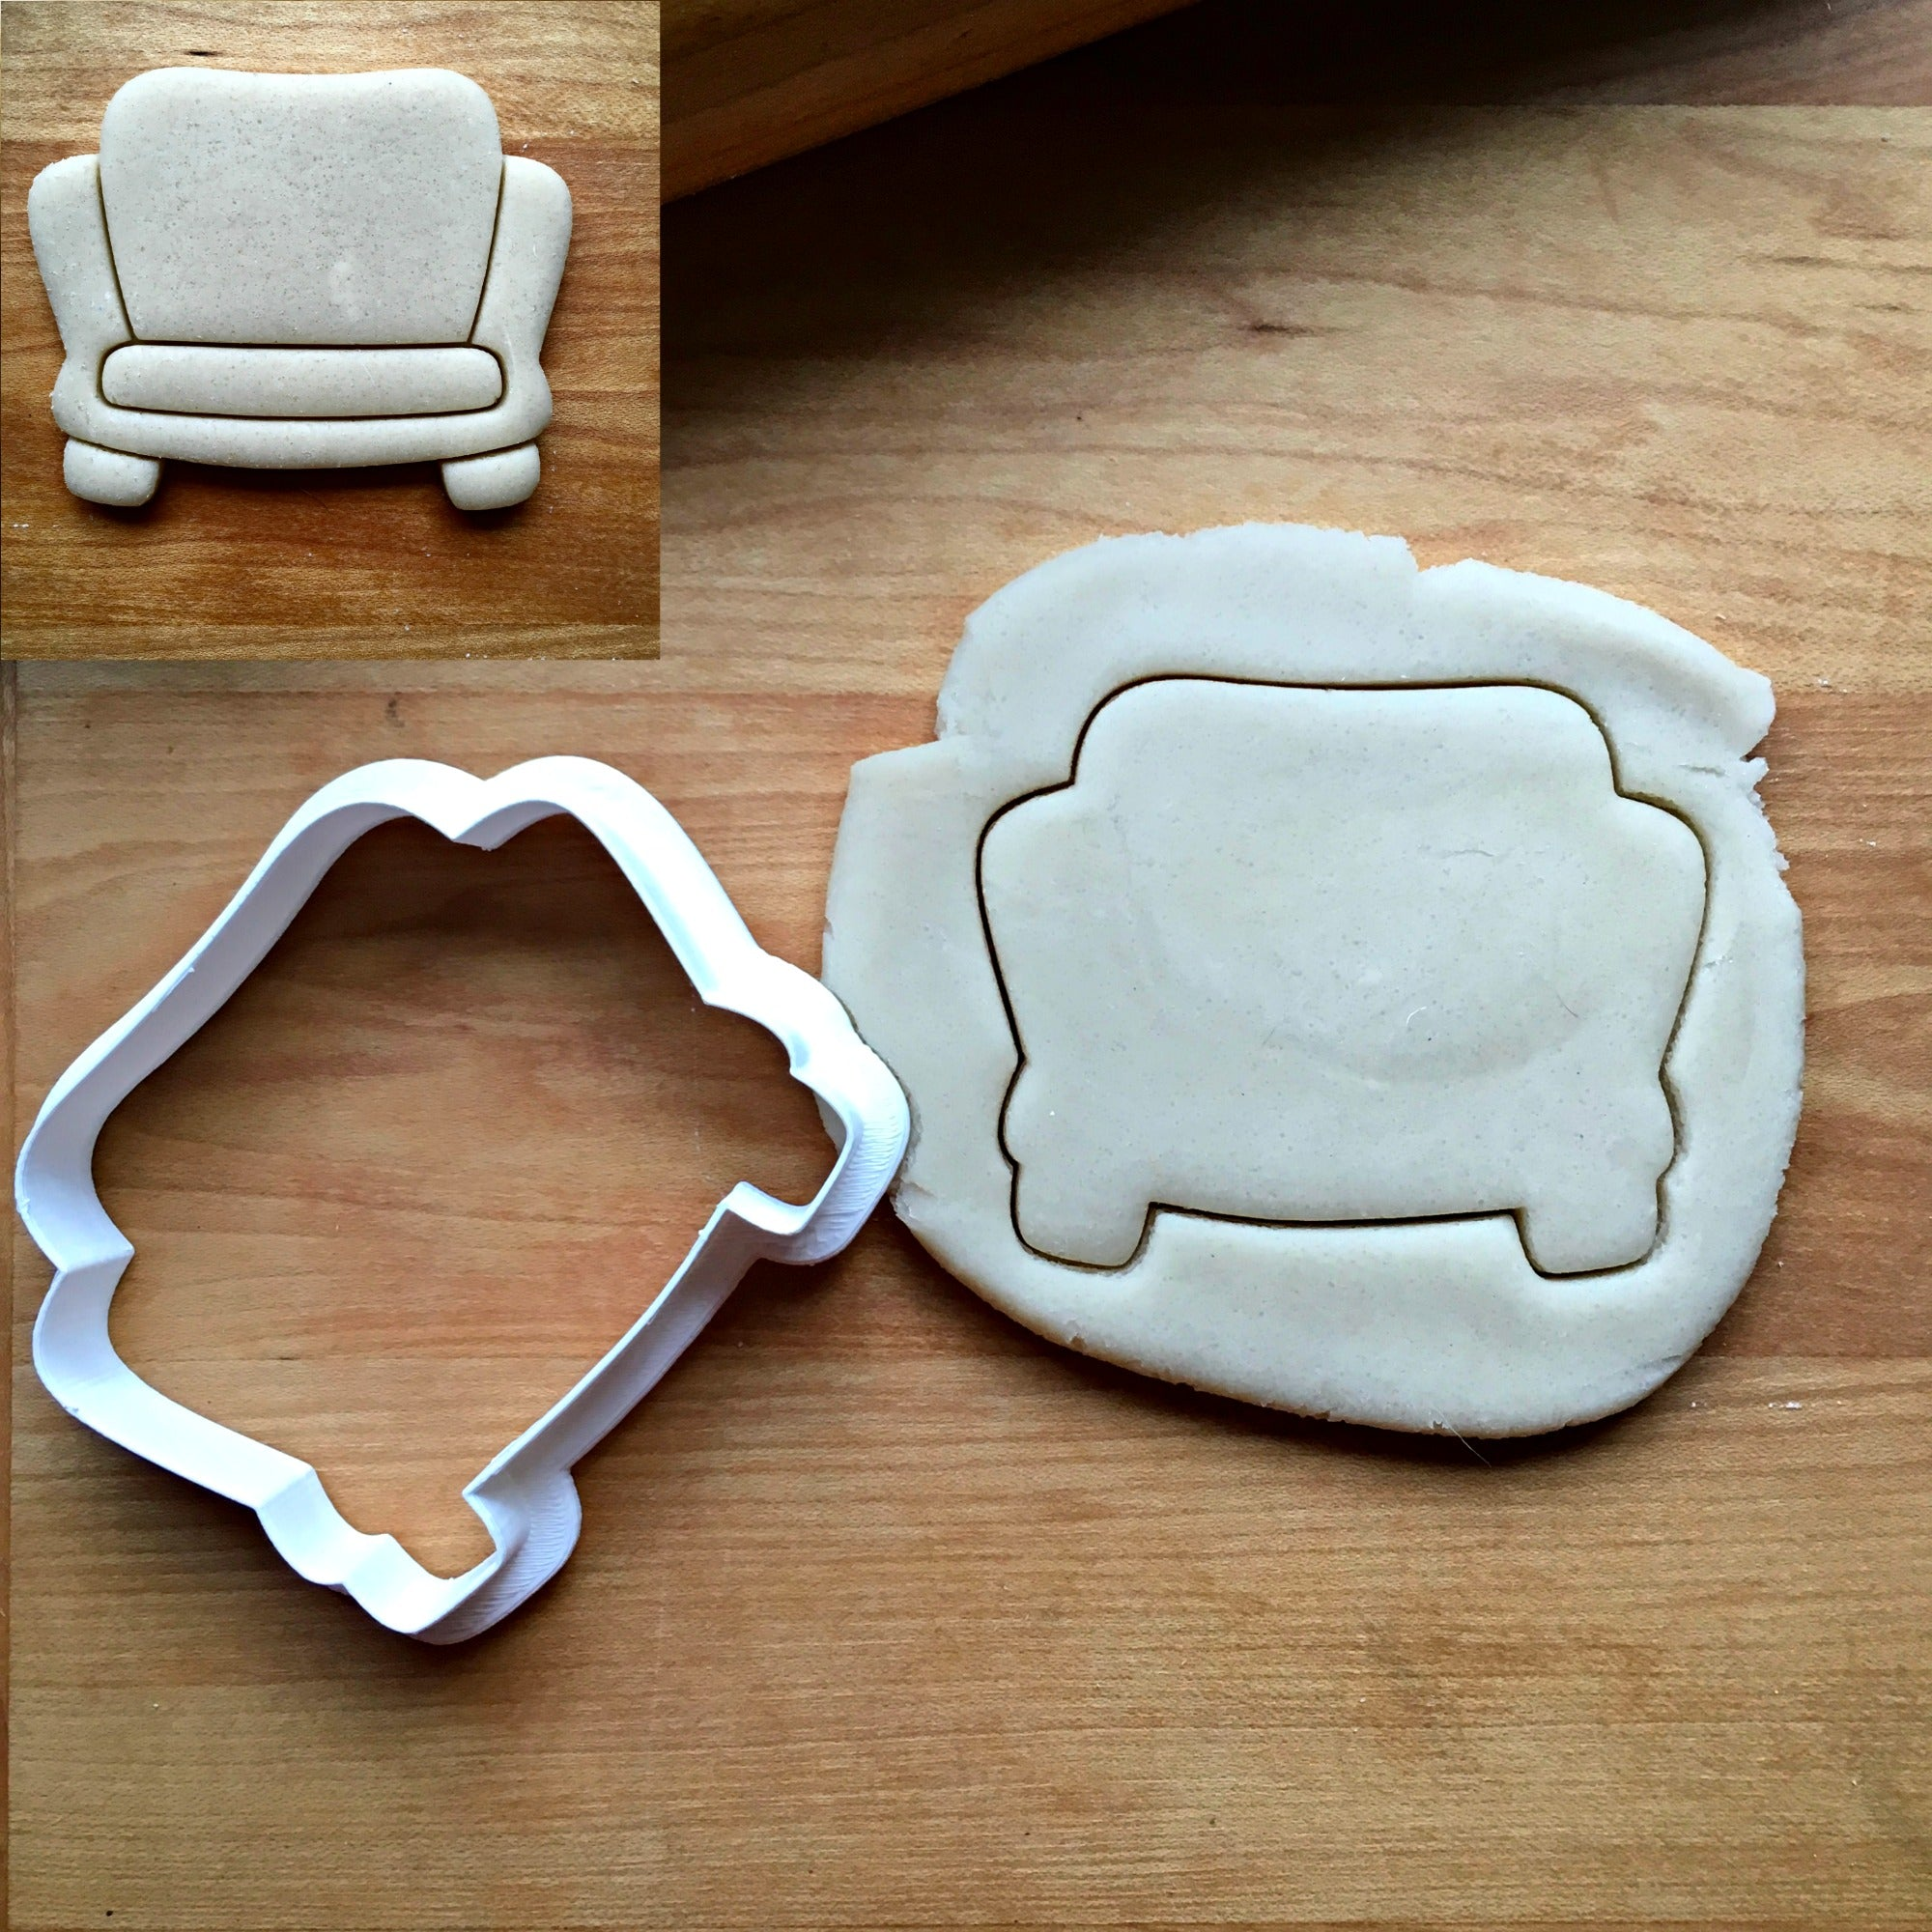 Couch Cookie Cutter/Dishwasher Safe